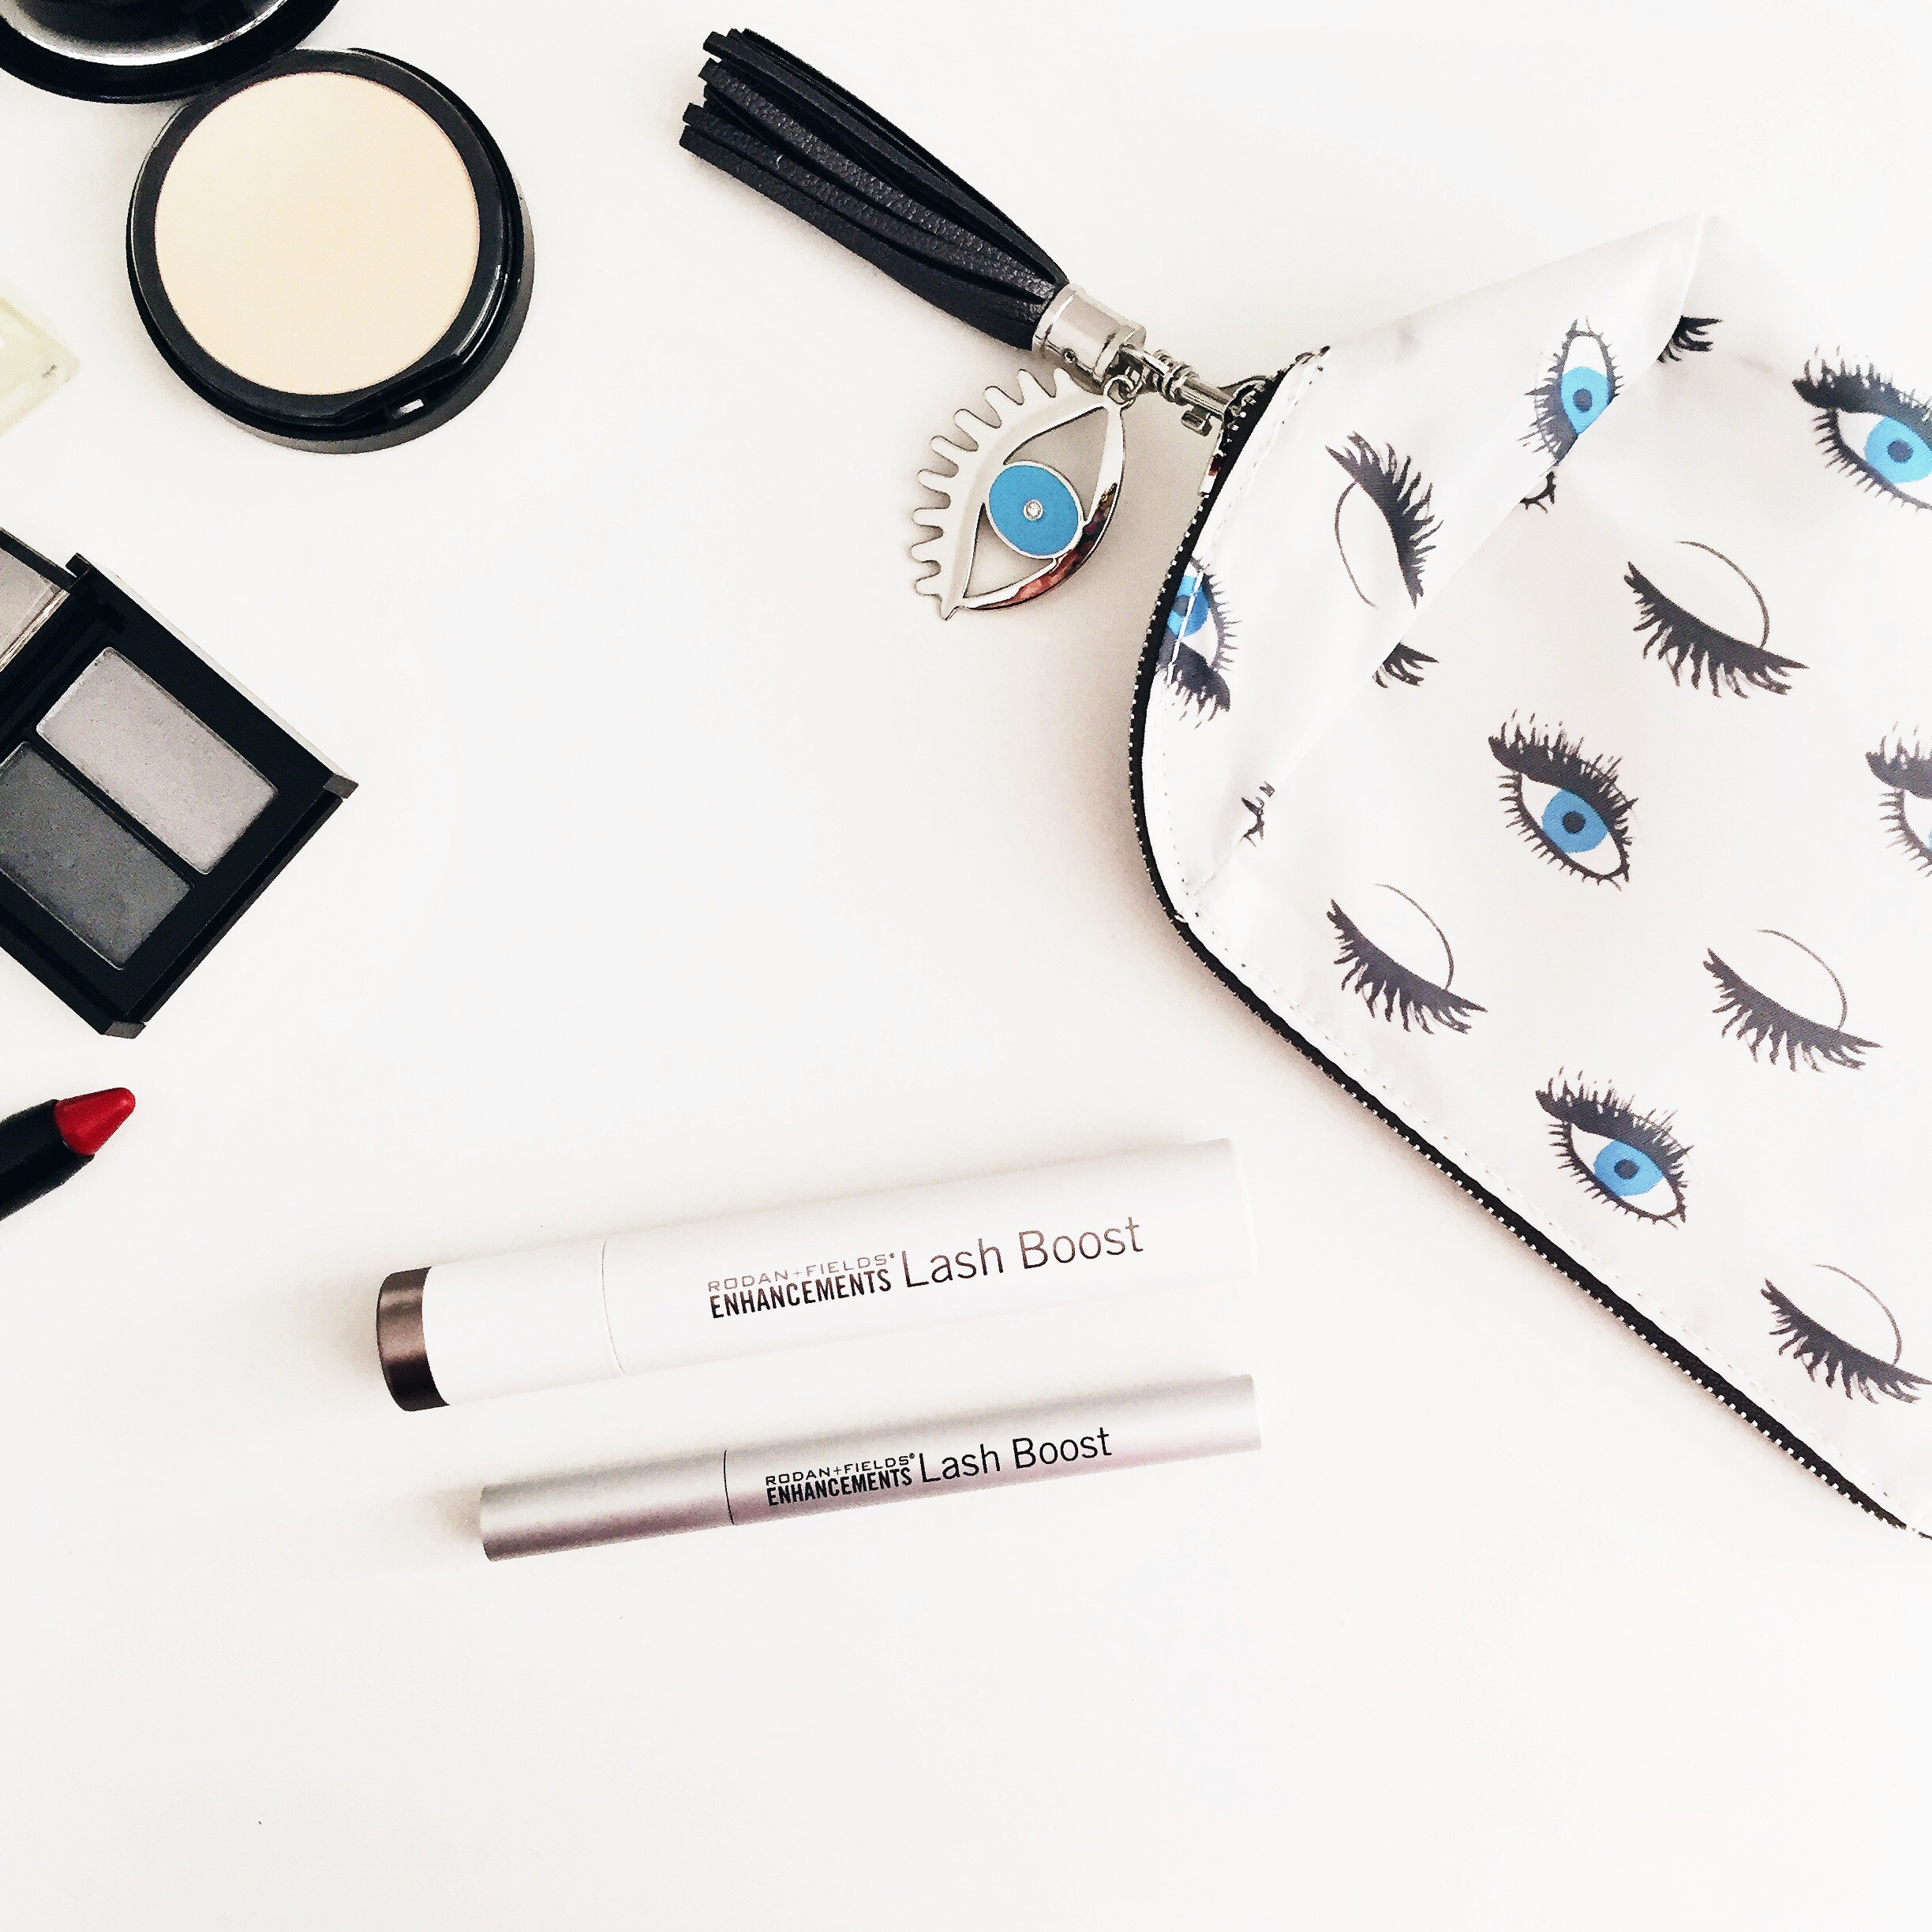 e976ecf6304 Processed with VSCO with hb1 preset - My Rodan and Fields Lash Boost Review  - Longer